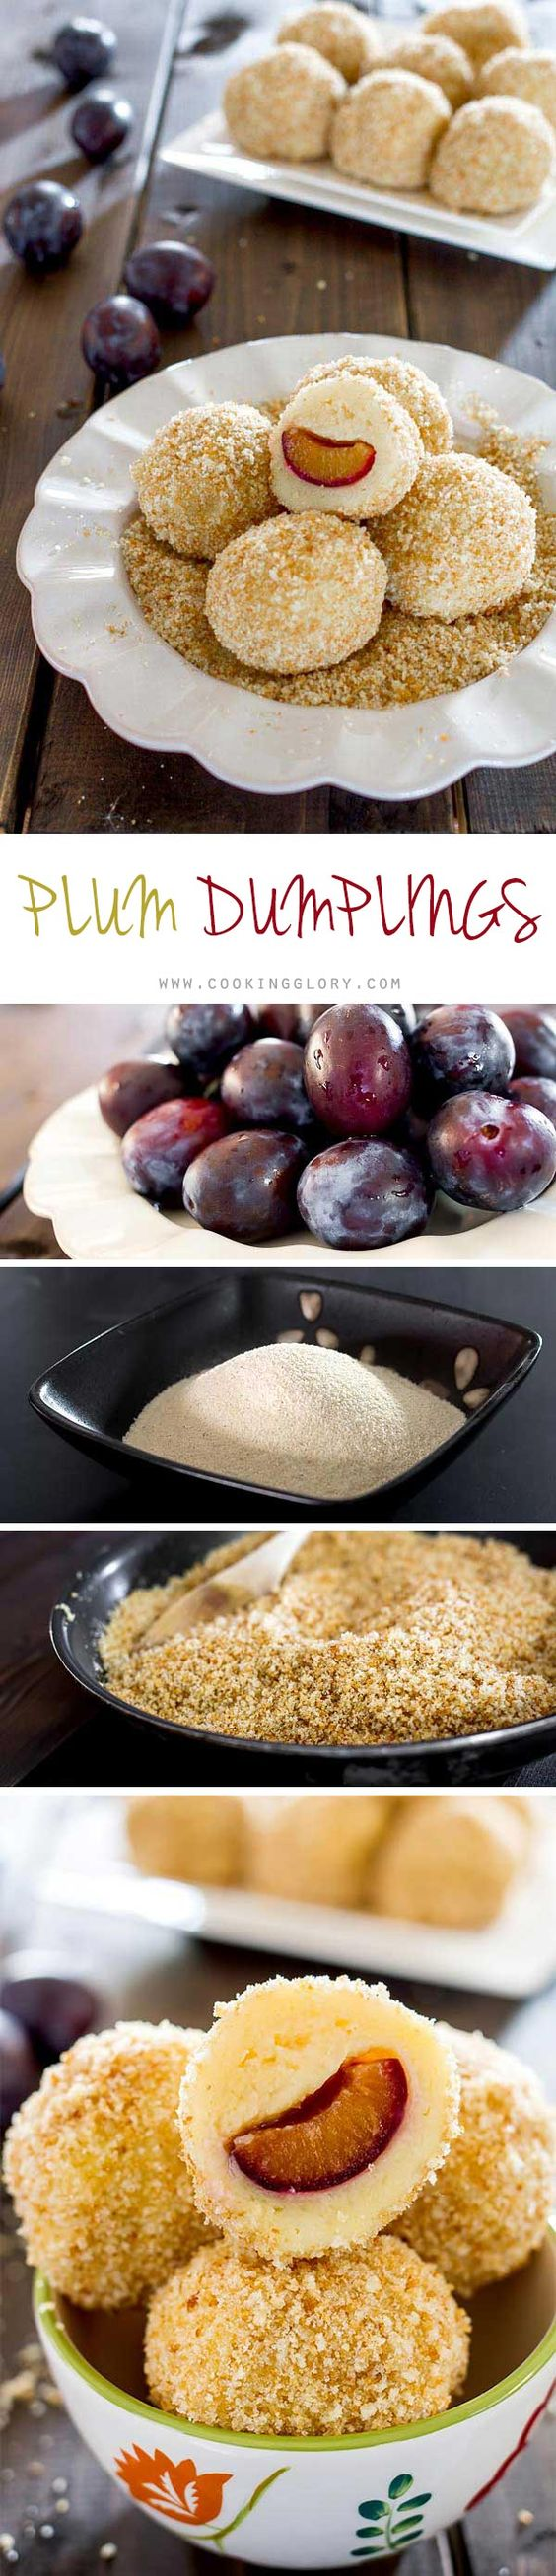 These plum dumplings are a traditional Romanian dessert made of fresh plums rolled into a soft potato dough, covered with a breadcrumb-sugar mixture.